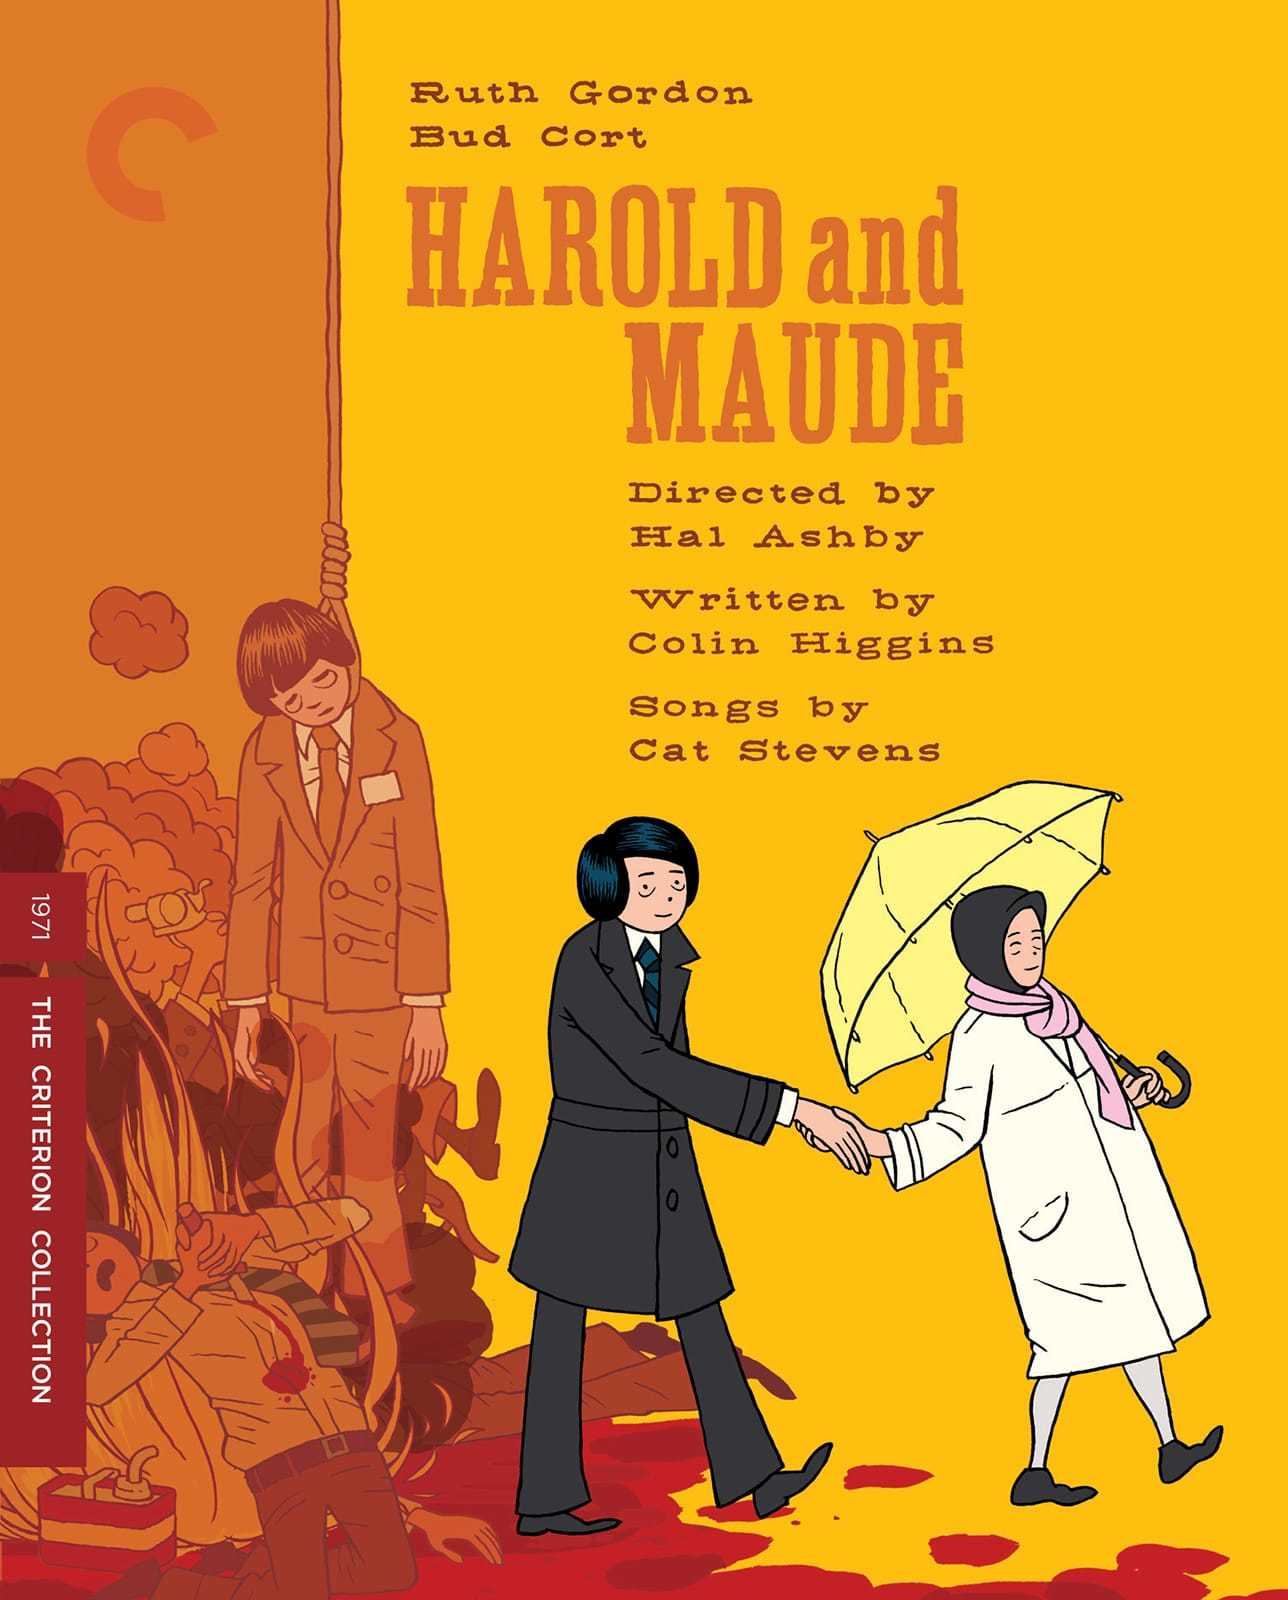 Harold and maude criterion dvd cover stock